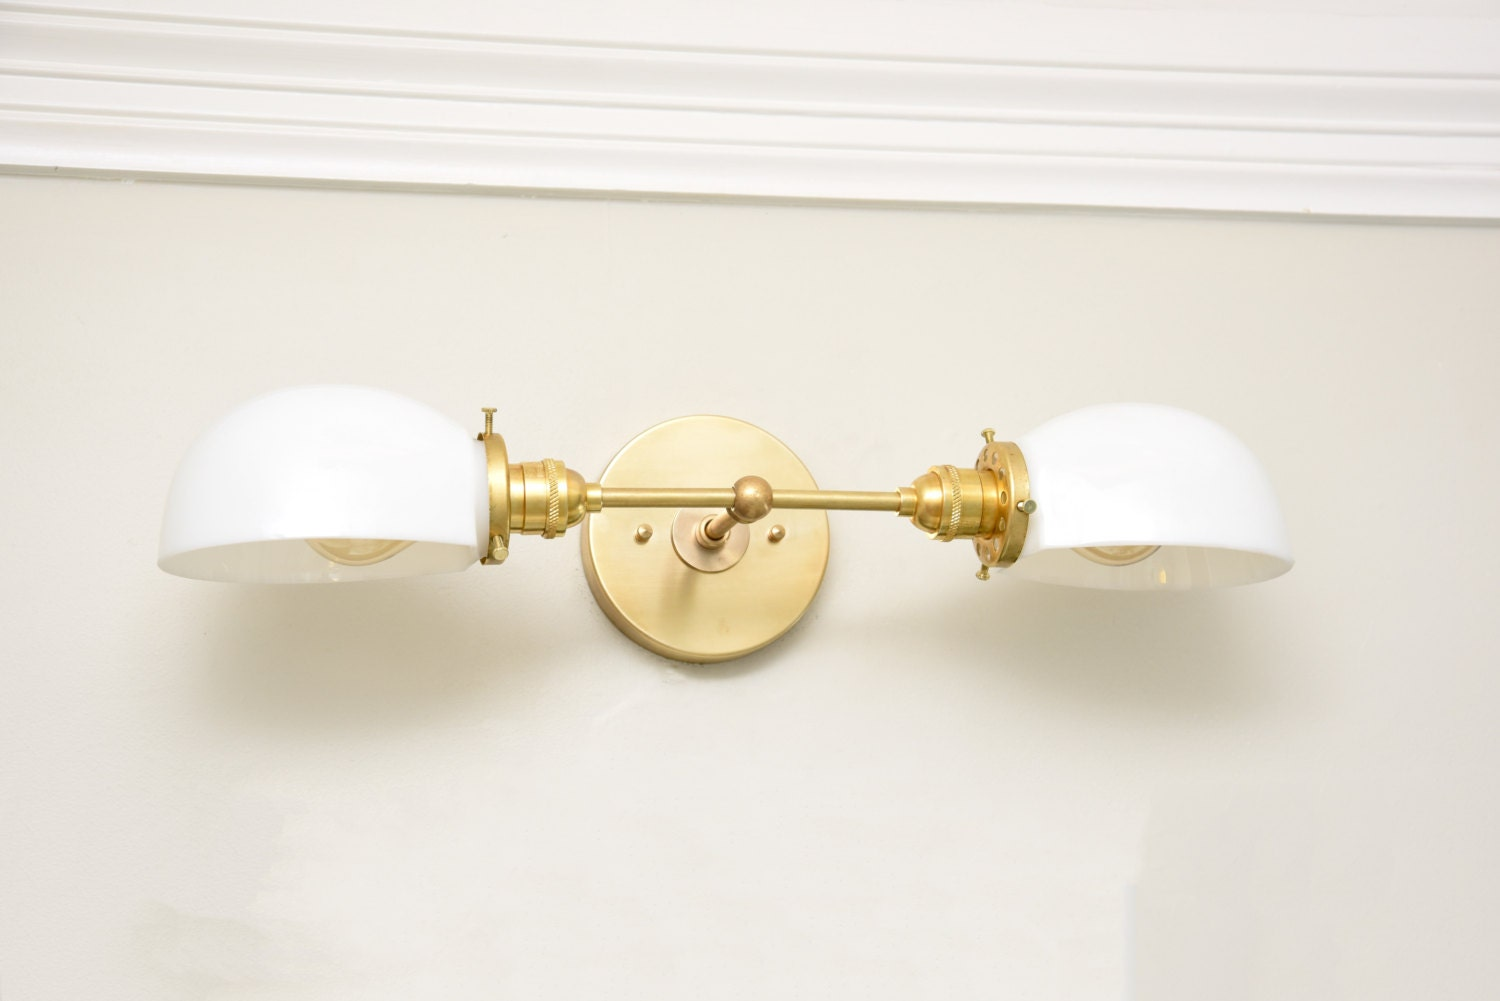 Free Shipping! Wall Sconce Vanity Gold Brass 2 Bulb With White Opal Glass Shades Modern Mid ...